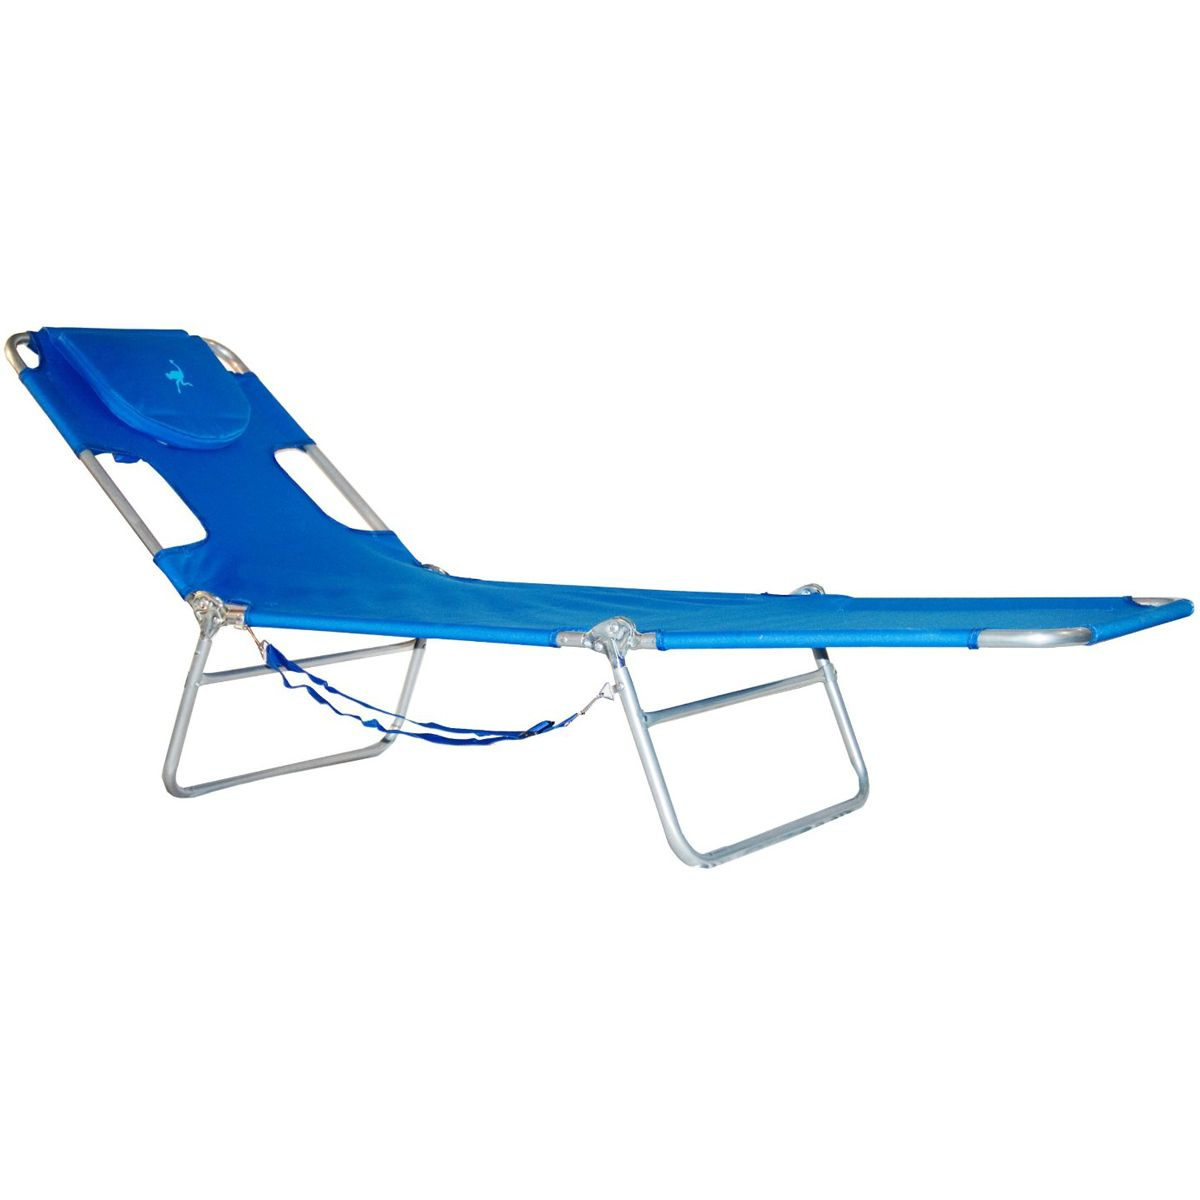 Pleasant Outdoor Aluminum Beach Loungers Price Cheap Beach And Gmtry Best Dining Table And Chair Ideas Images Gmtryco